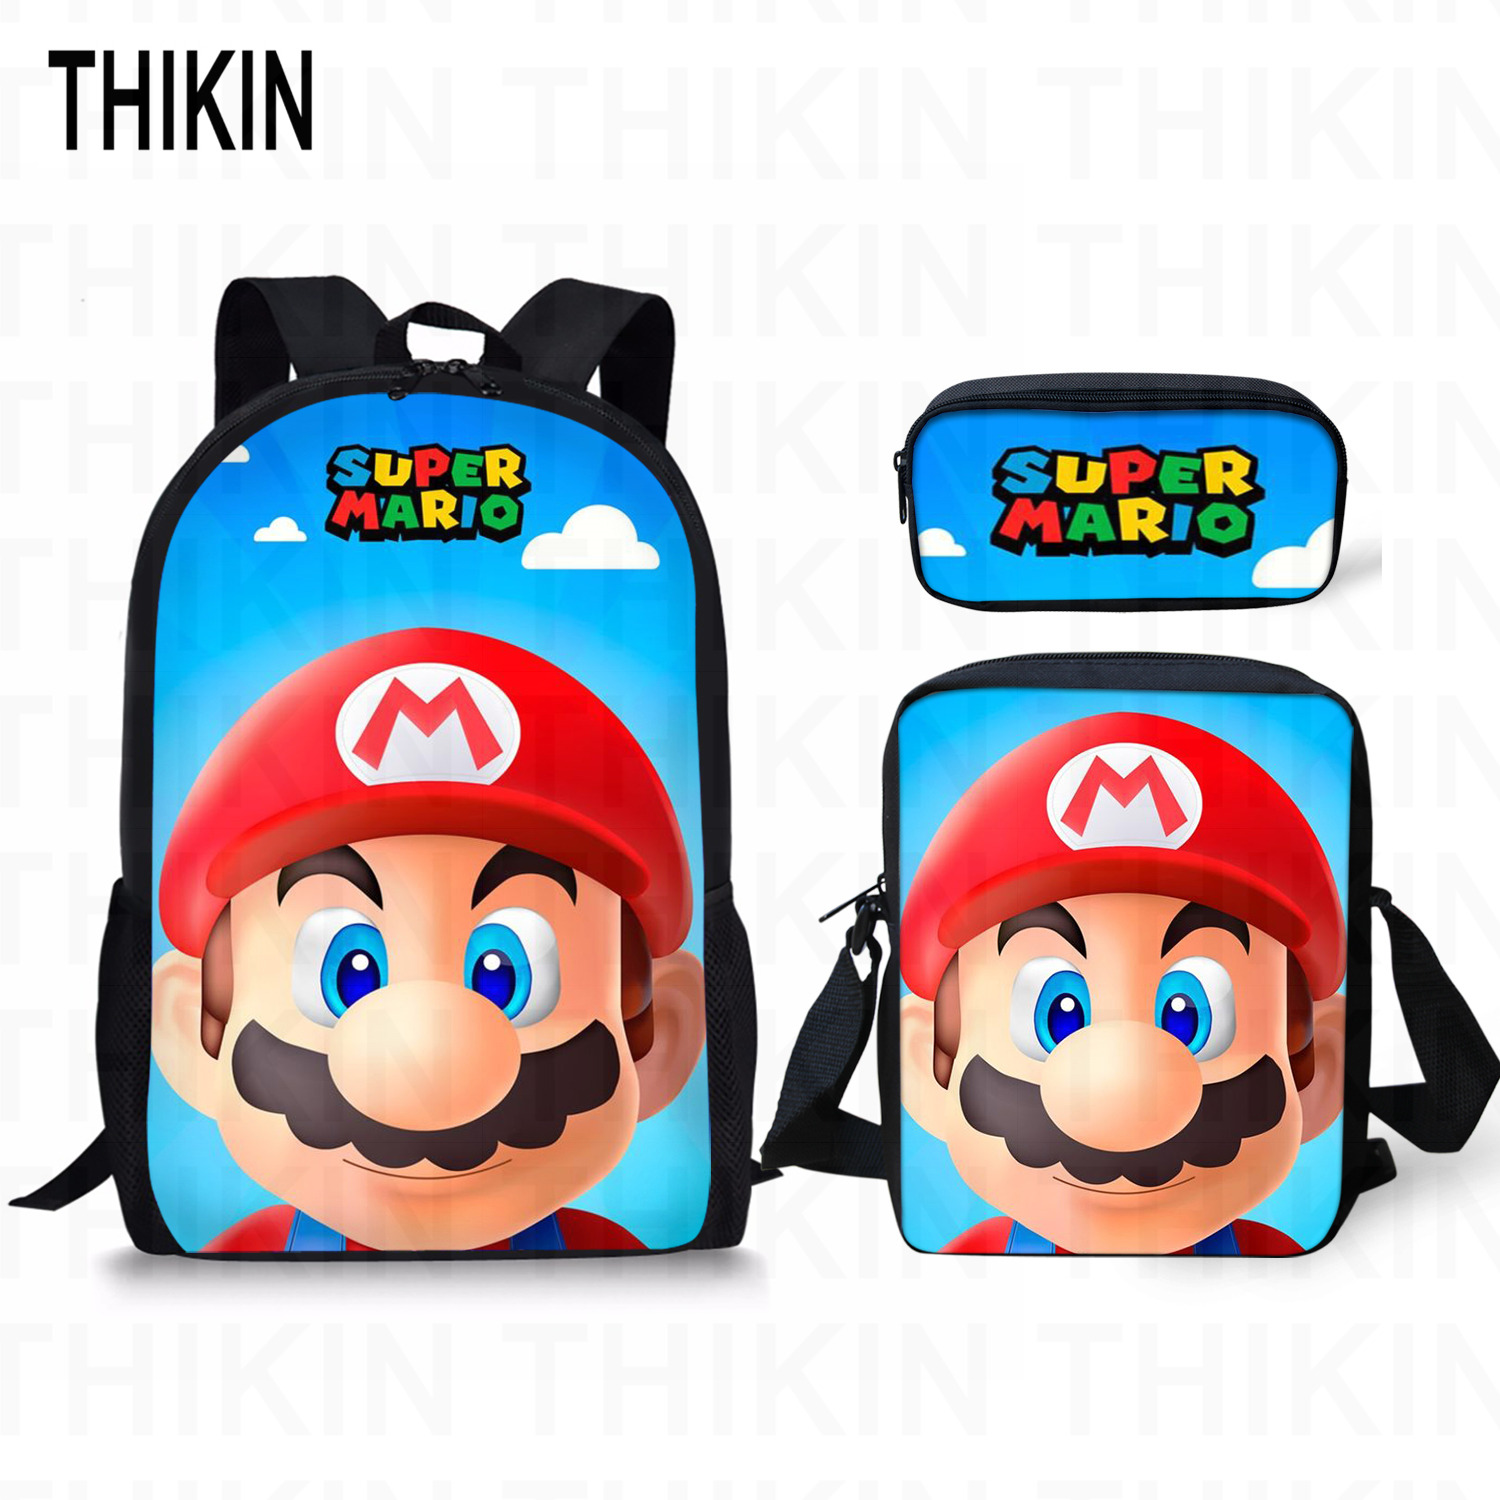 THIKIN Super Mario Run Print Kids Boys Girls School Backpacks Children Shoulder Bag Cartoon Game Schoolbags for Teenage Mochila in School Bags from Luggage Bags